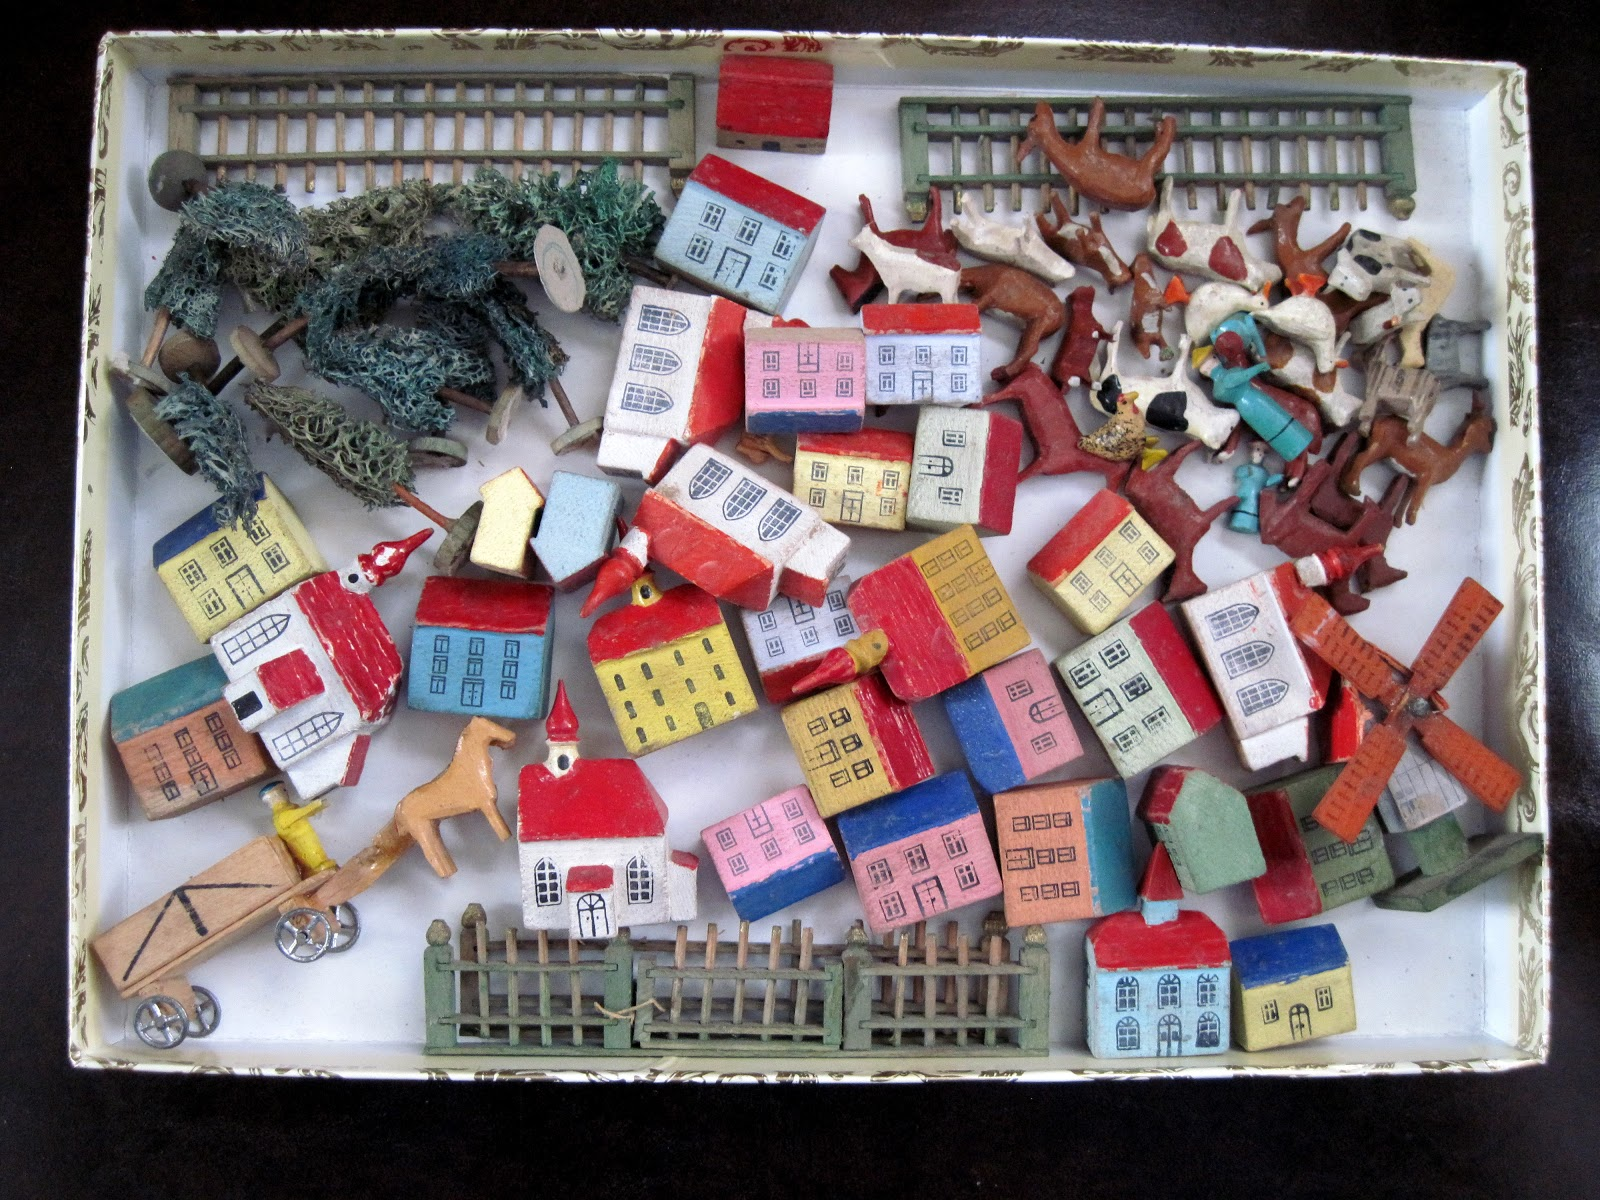 Tracy s Toys and Some Other Stuff German Miniature Wooden Toy